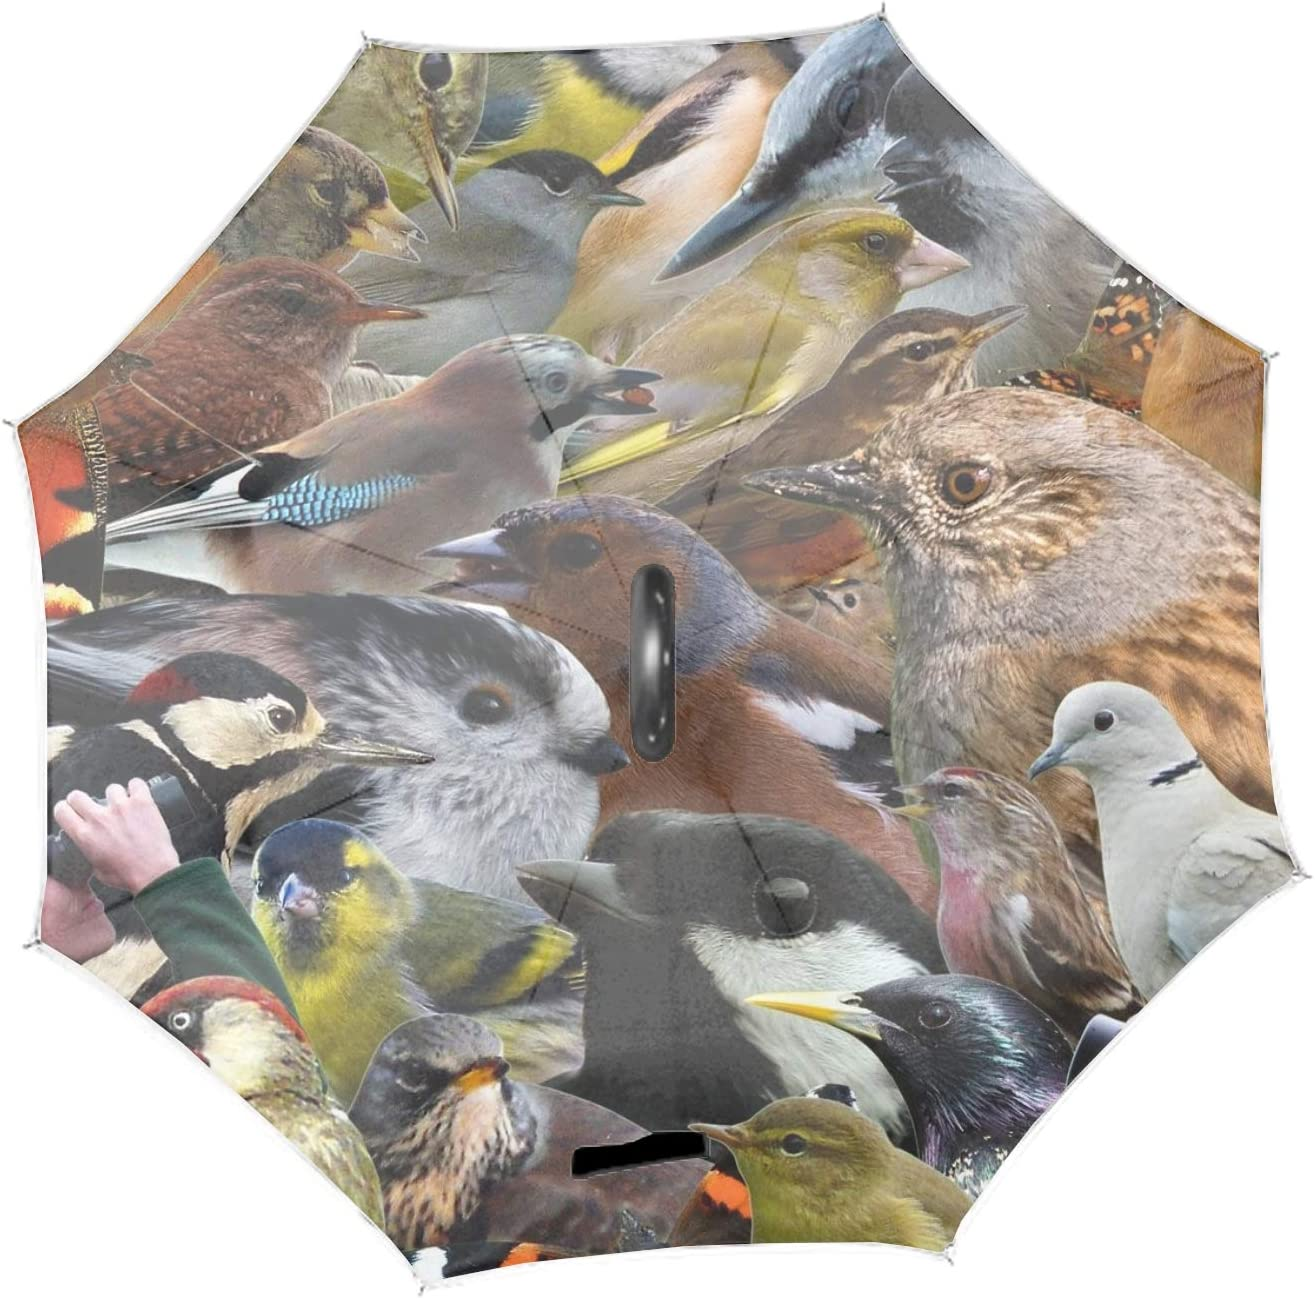 Birds Watcher Reverse//Inverted Double-Layer Waterproof Straight Umbrella Inside-Out for Car Use